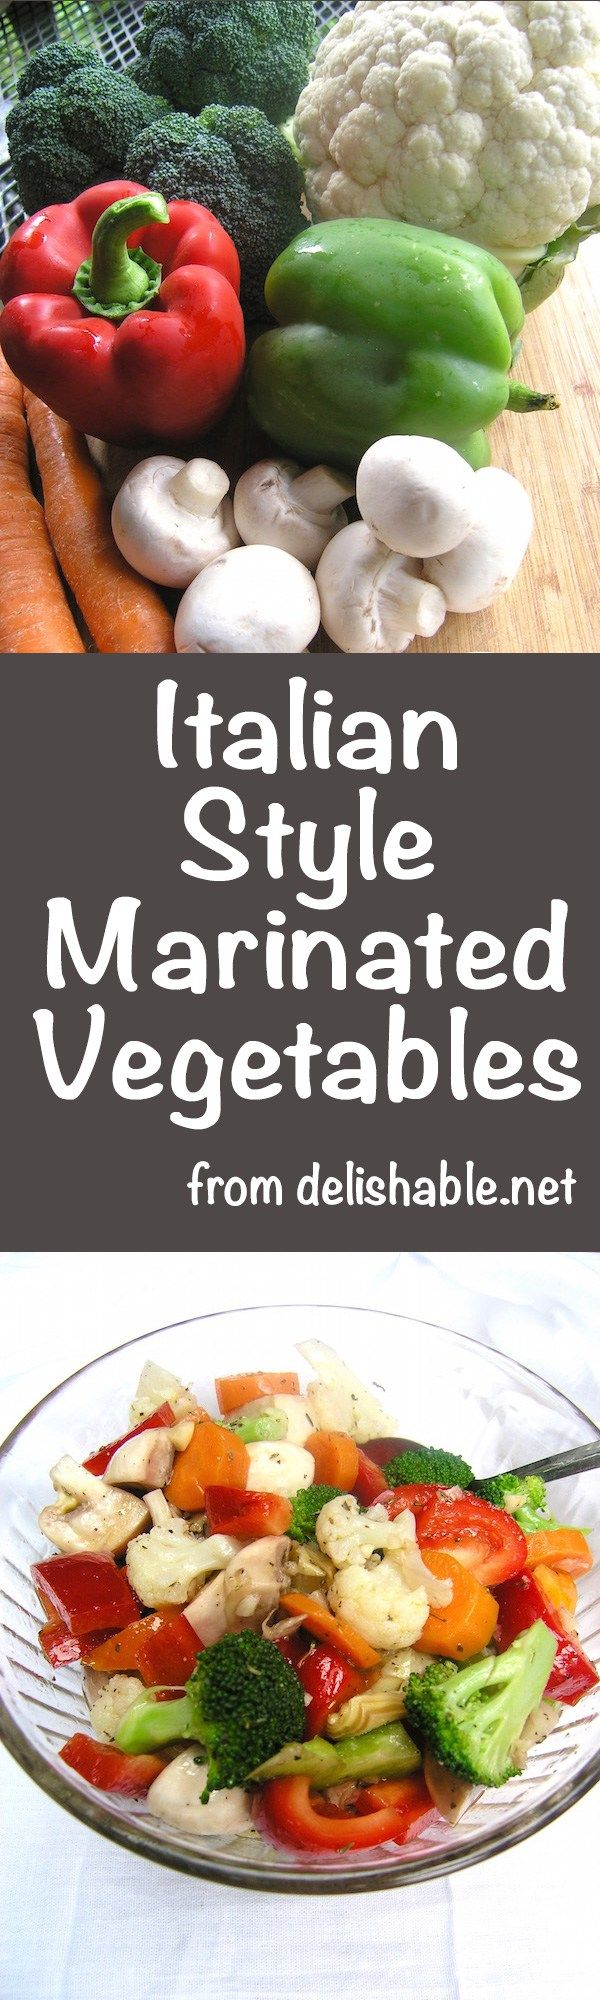 Italian Style Marinated Vegetables are colorful, zesty and easy to make. This recipe works well as either an appetizer, a side dish, or in a salad! Yum! | delishable.net